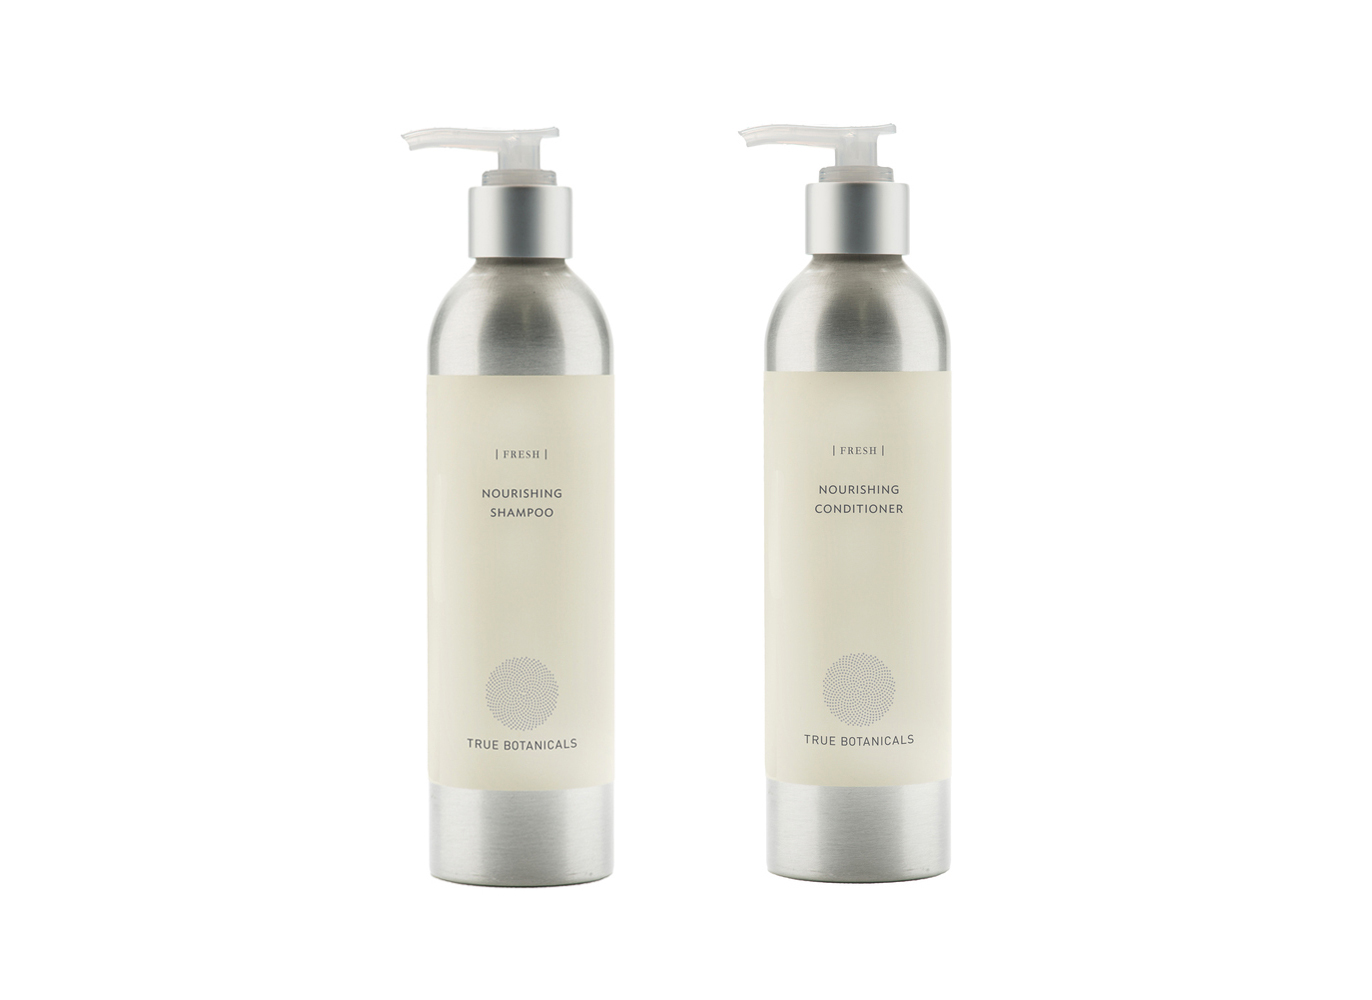 True Botanicals Nourishing Shampoo & Conditioner